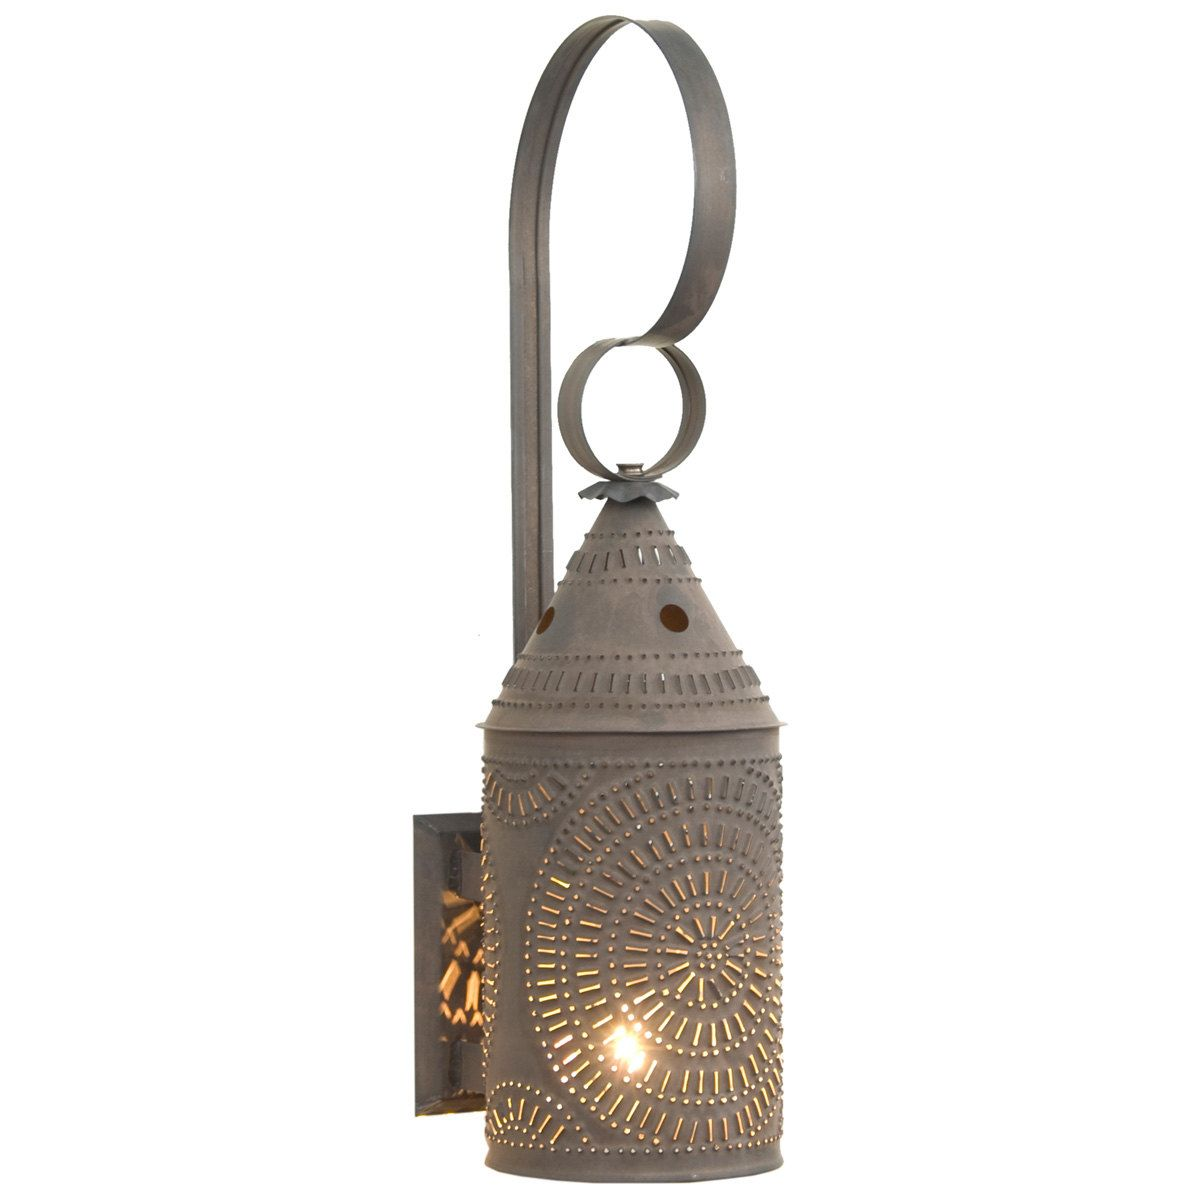 punched tin lighting fixtures. 15 punched tin lighting fixtures